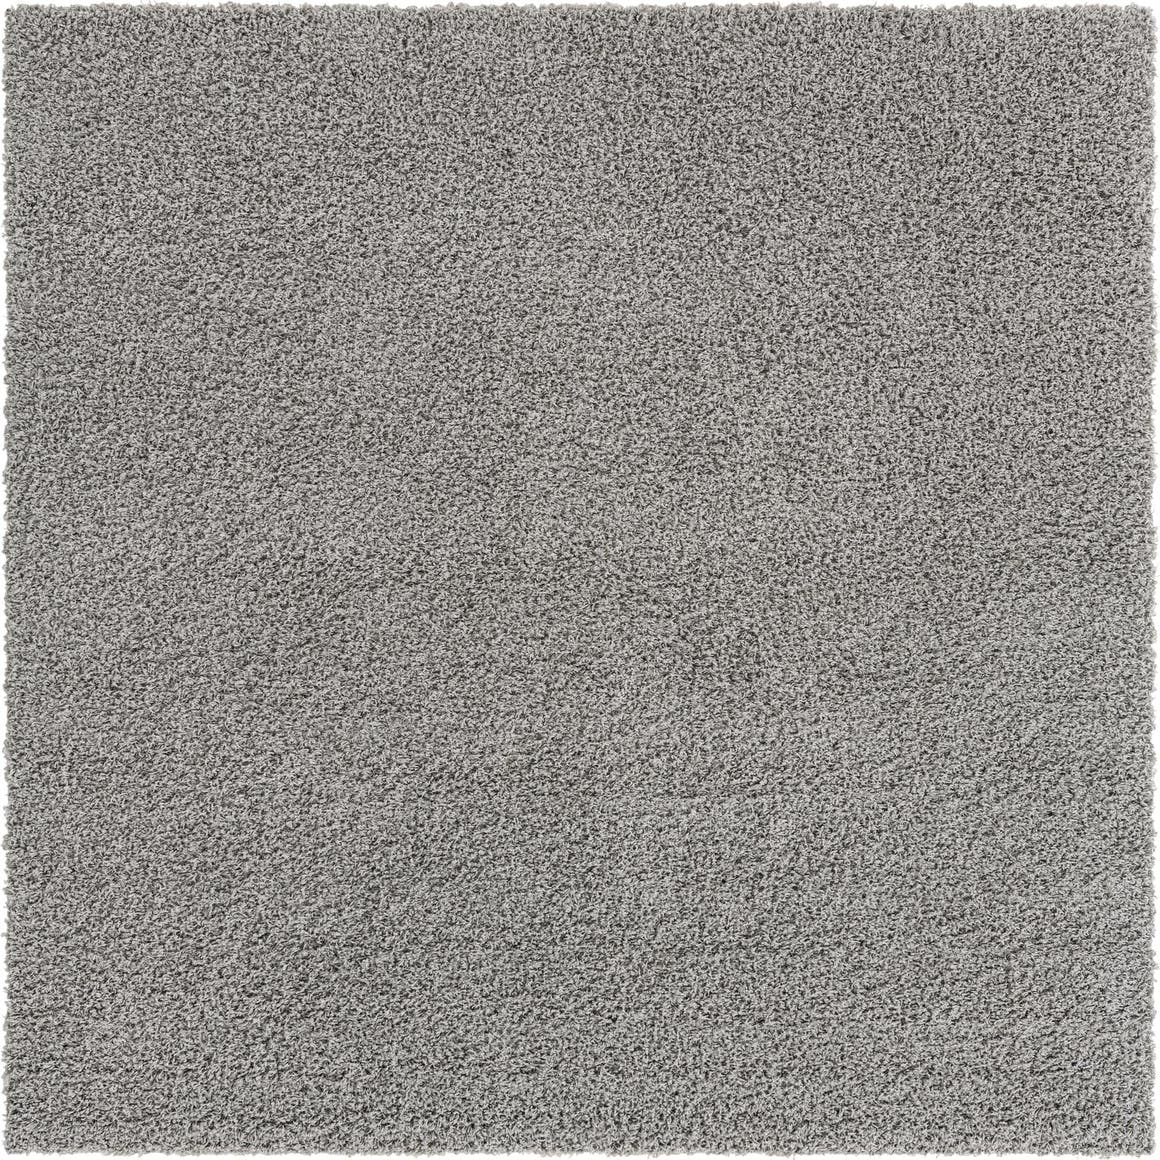 8' x 8' Solid Shag Square Rug main image